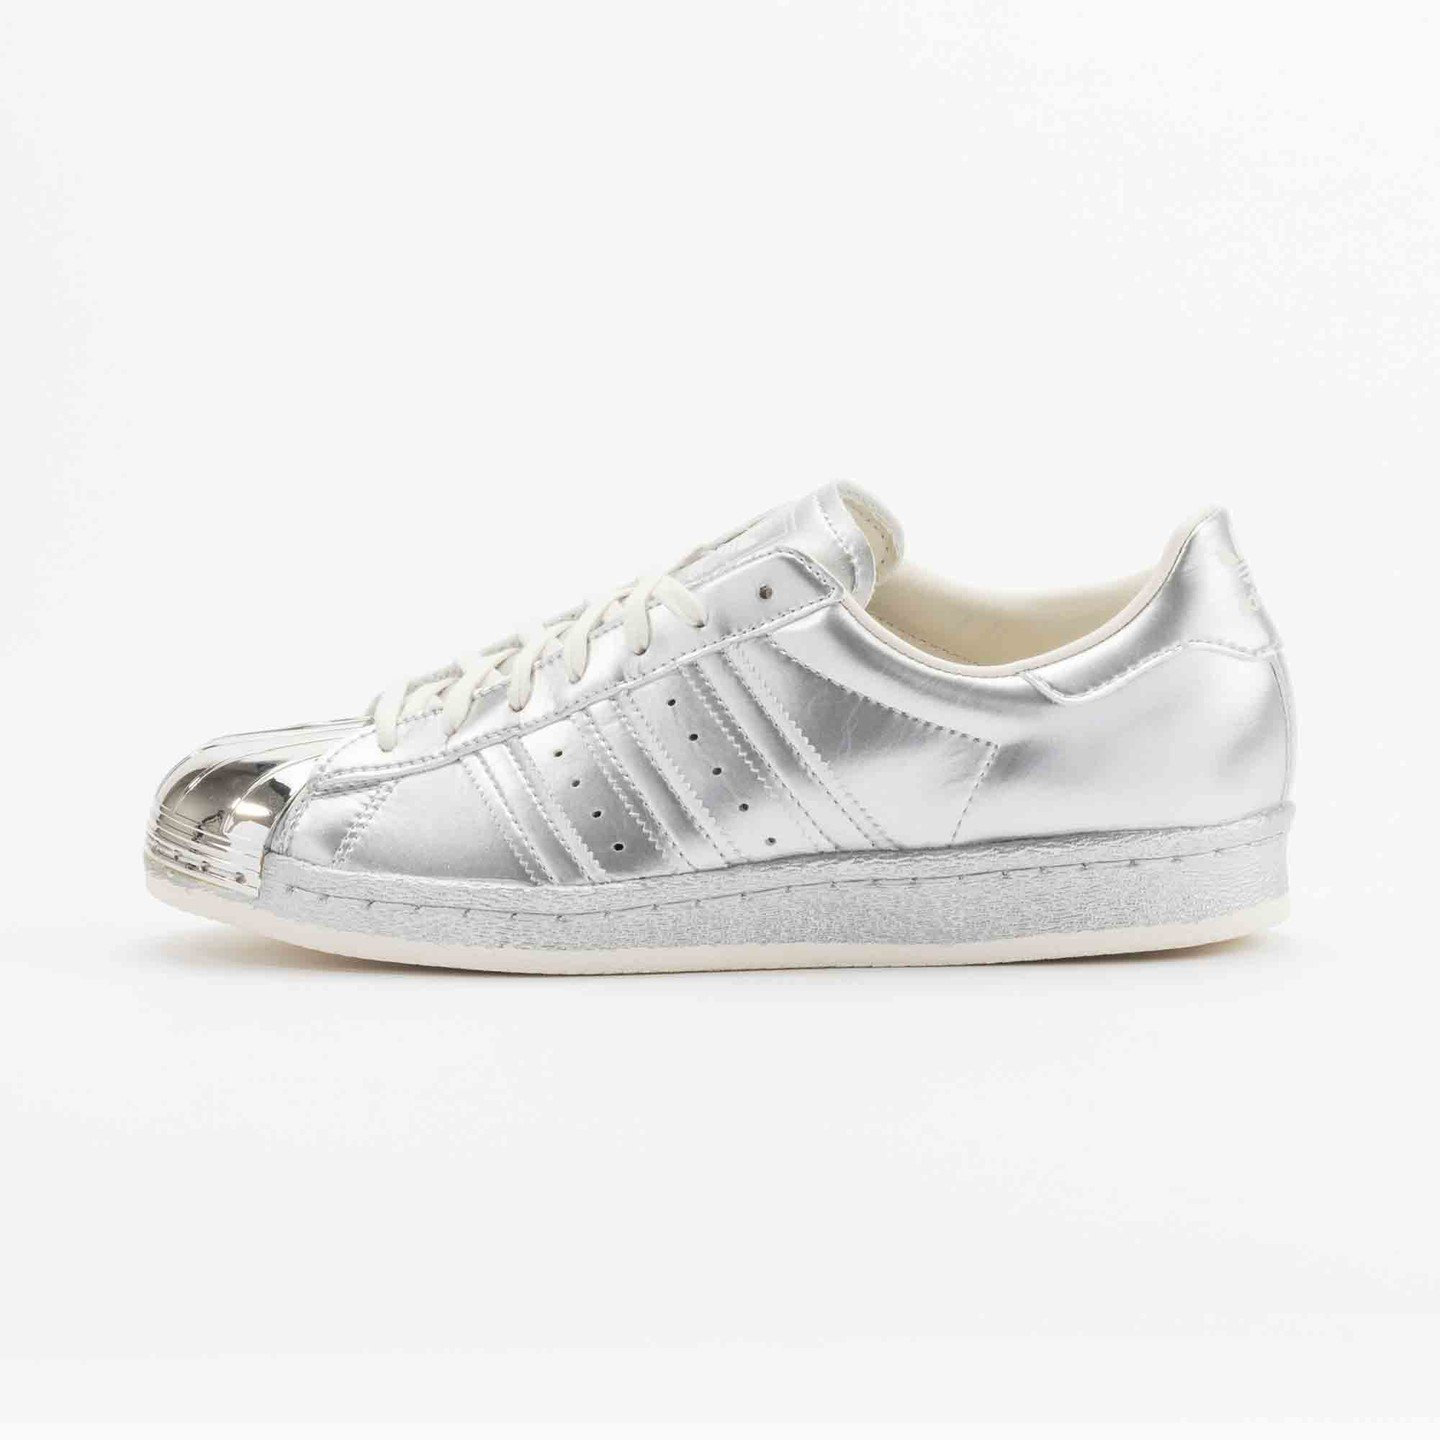 Adidas Superstar 80s Metallic Pack Silver Metallic S82741-36.66